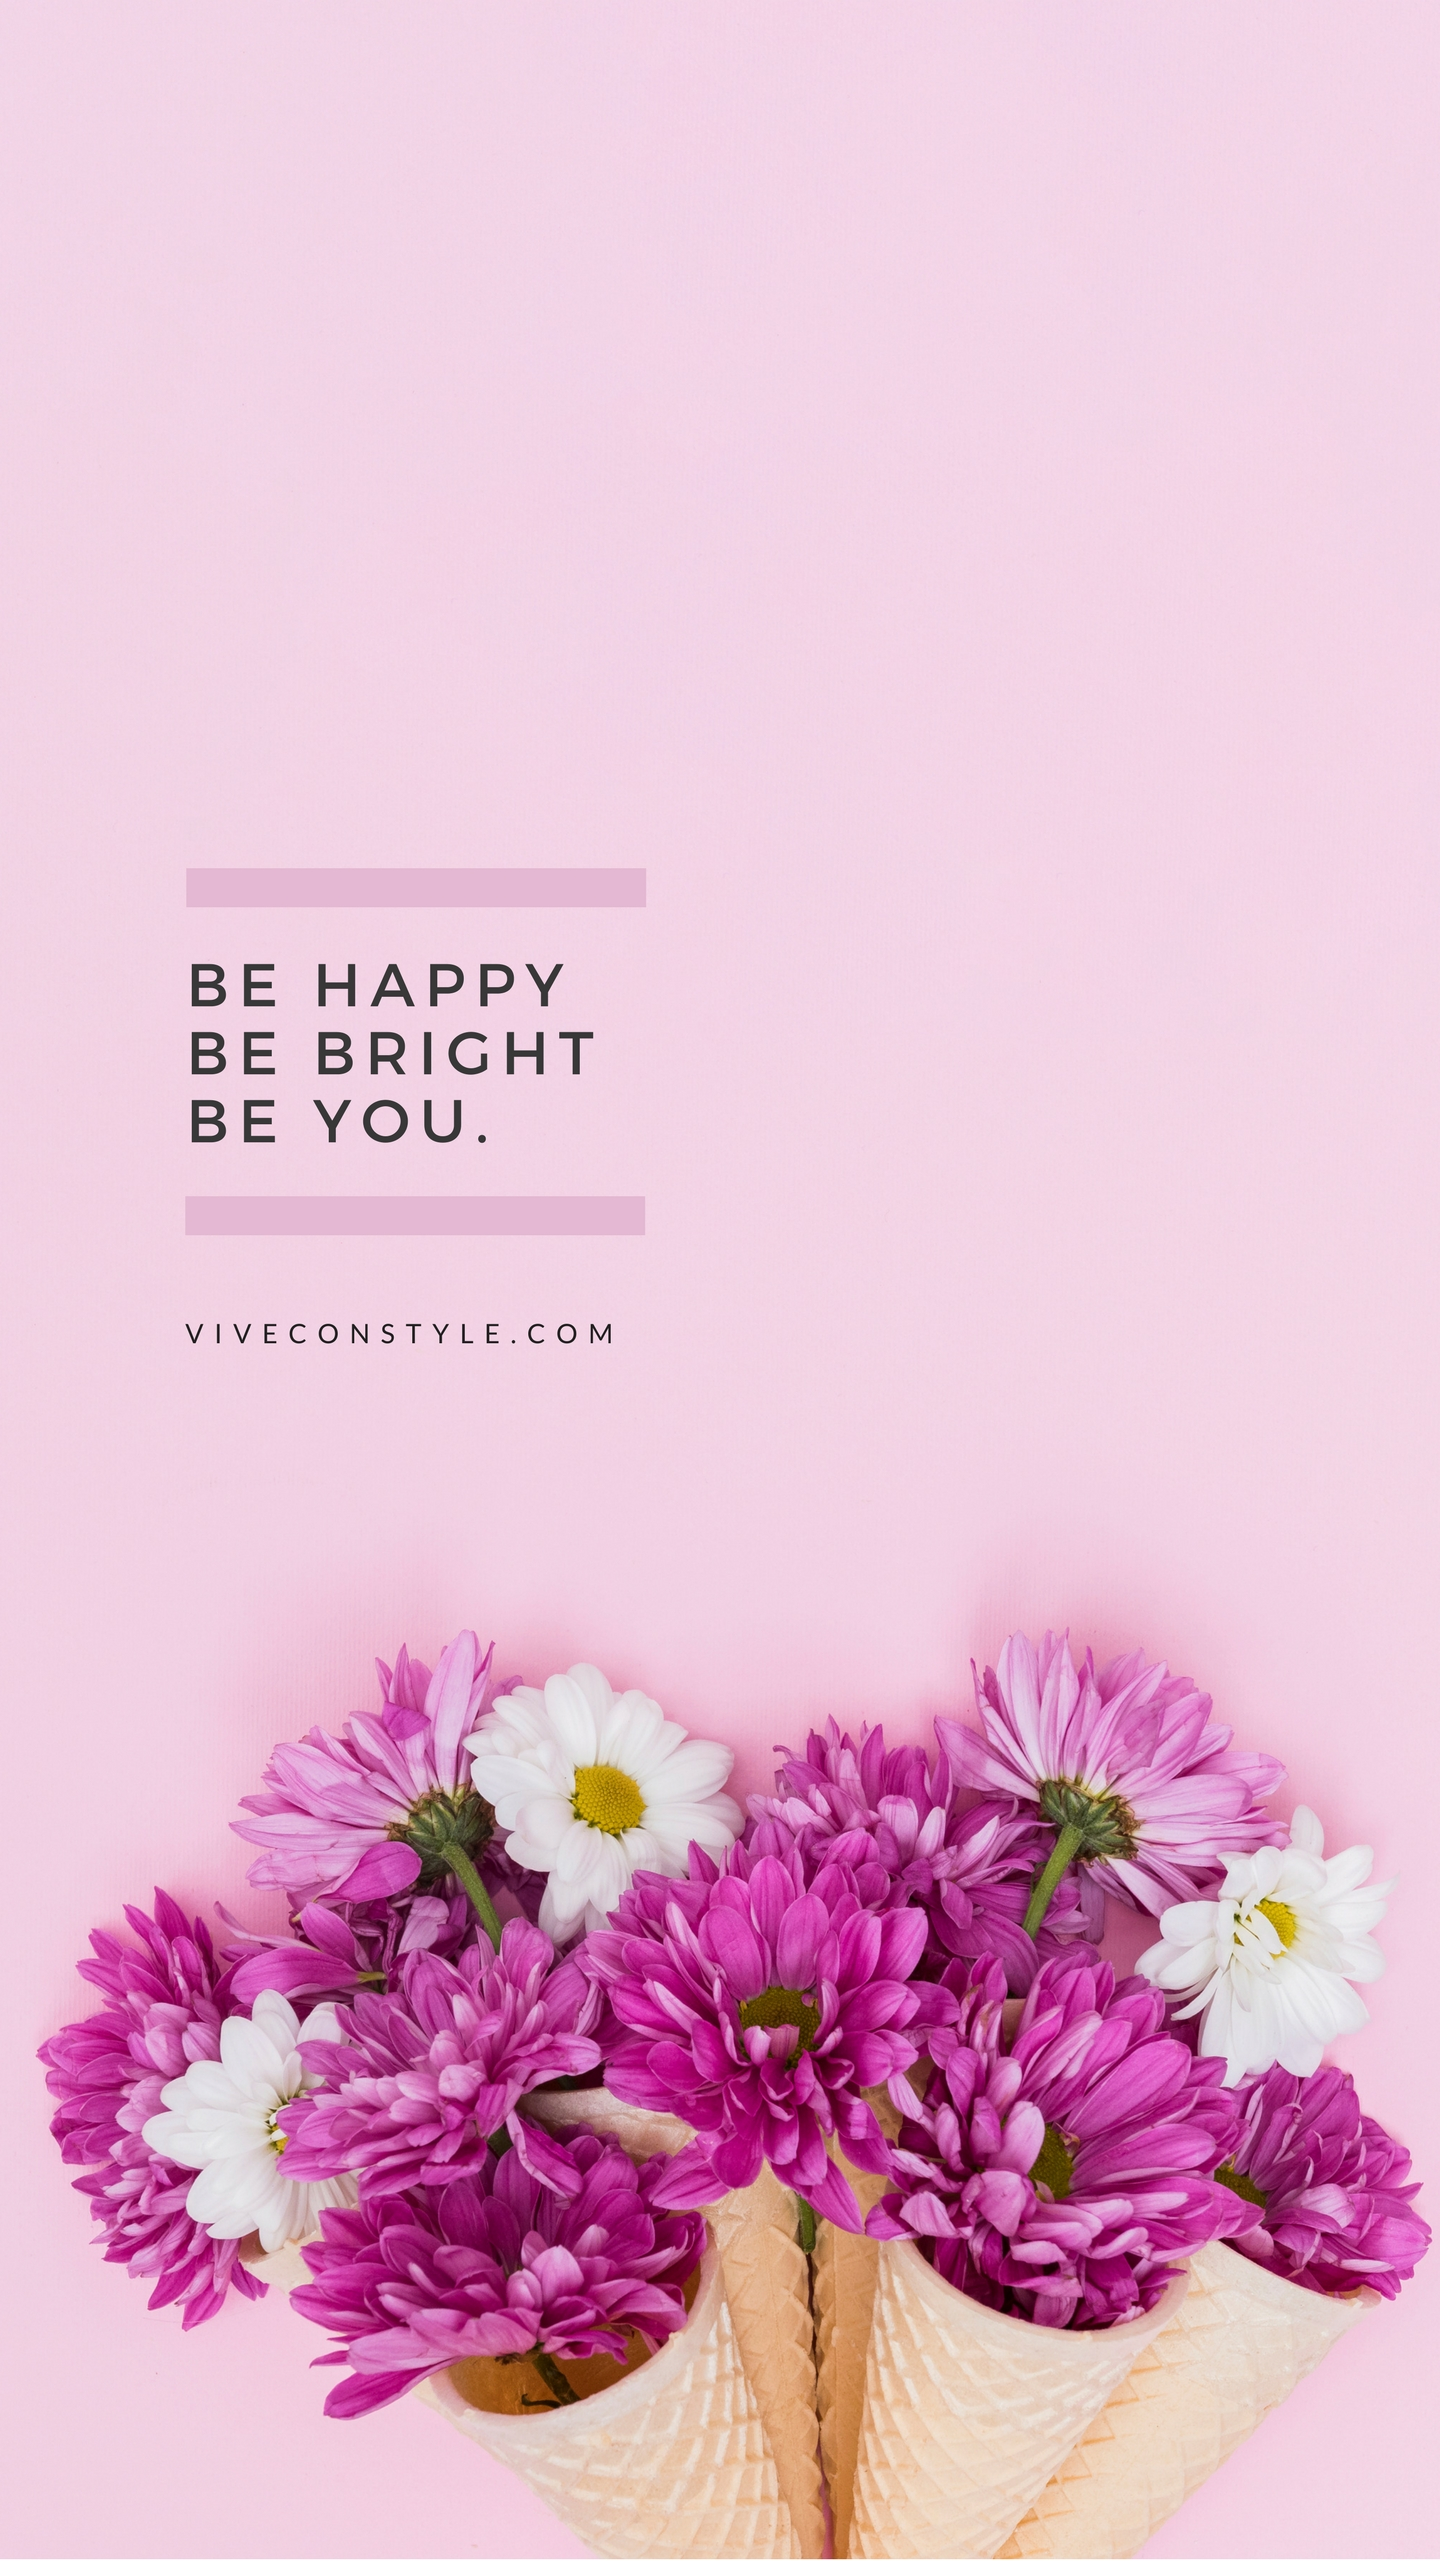 Be happy, be bright, be you mobile wallpaper